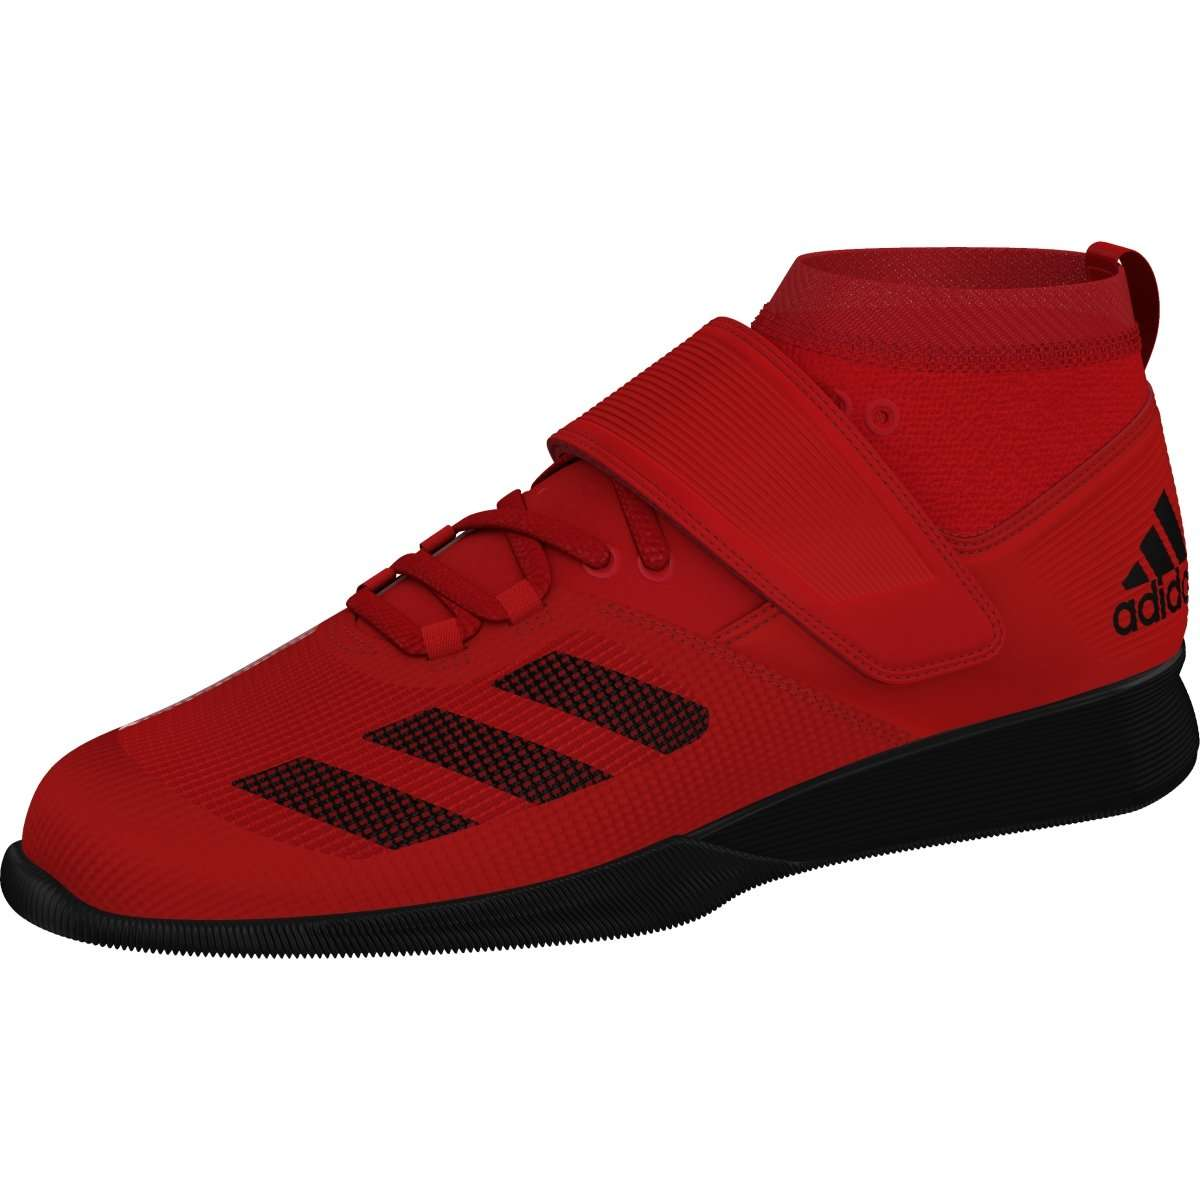 superior quality 24307 77936 ... adidas Crazy Power RK Mens Weightlifting Shoes - League Outfitters